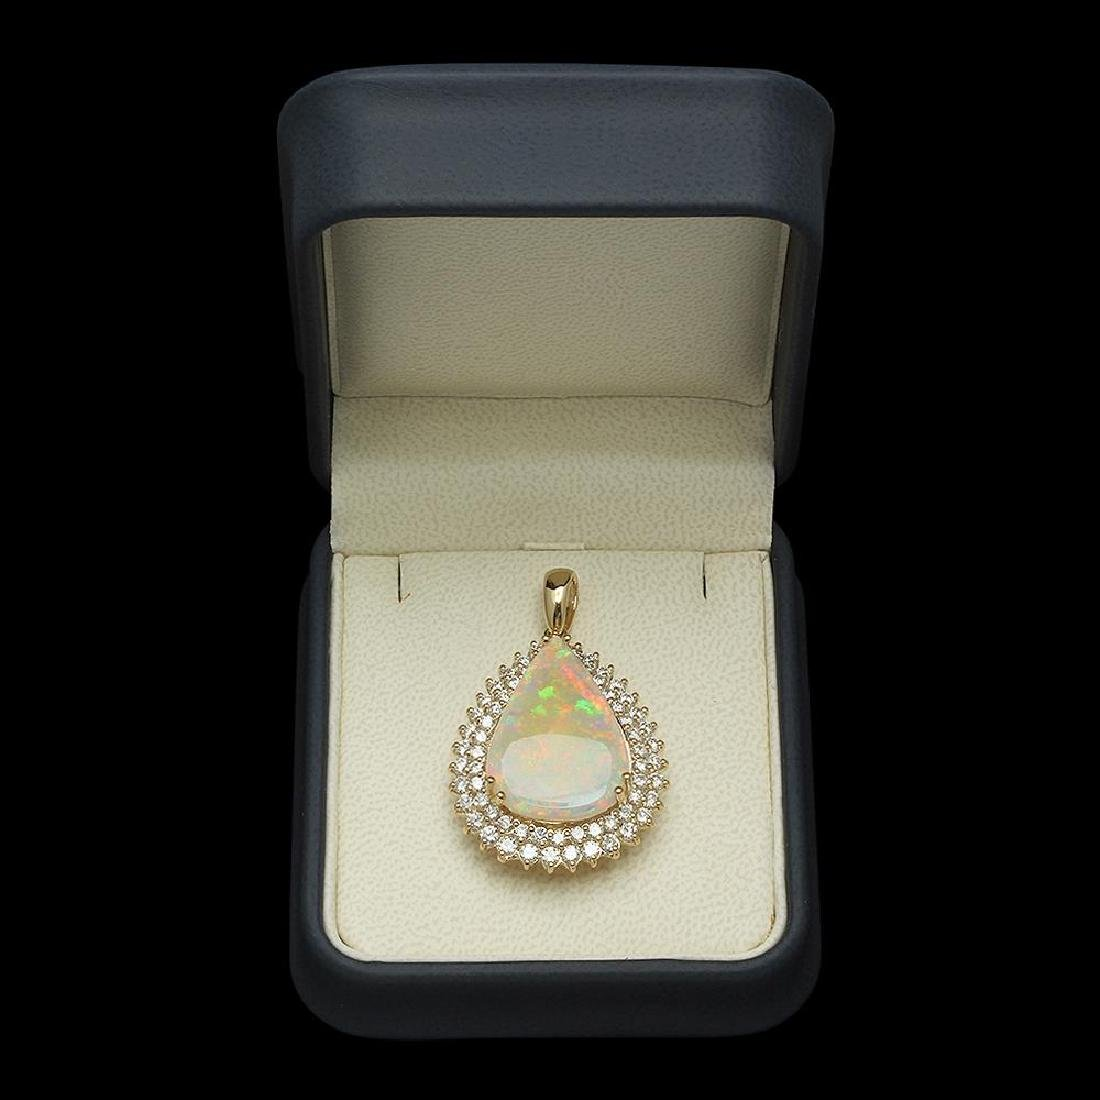 14K Gold 7.12ct Opal & 2.03ct Diamond Pendant - 3